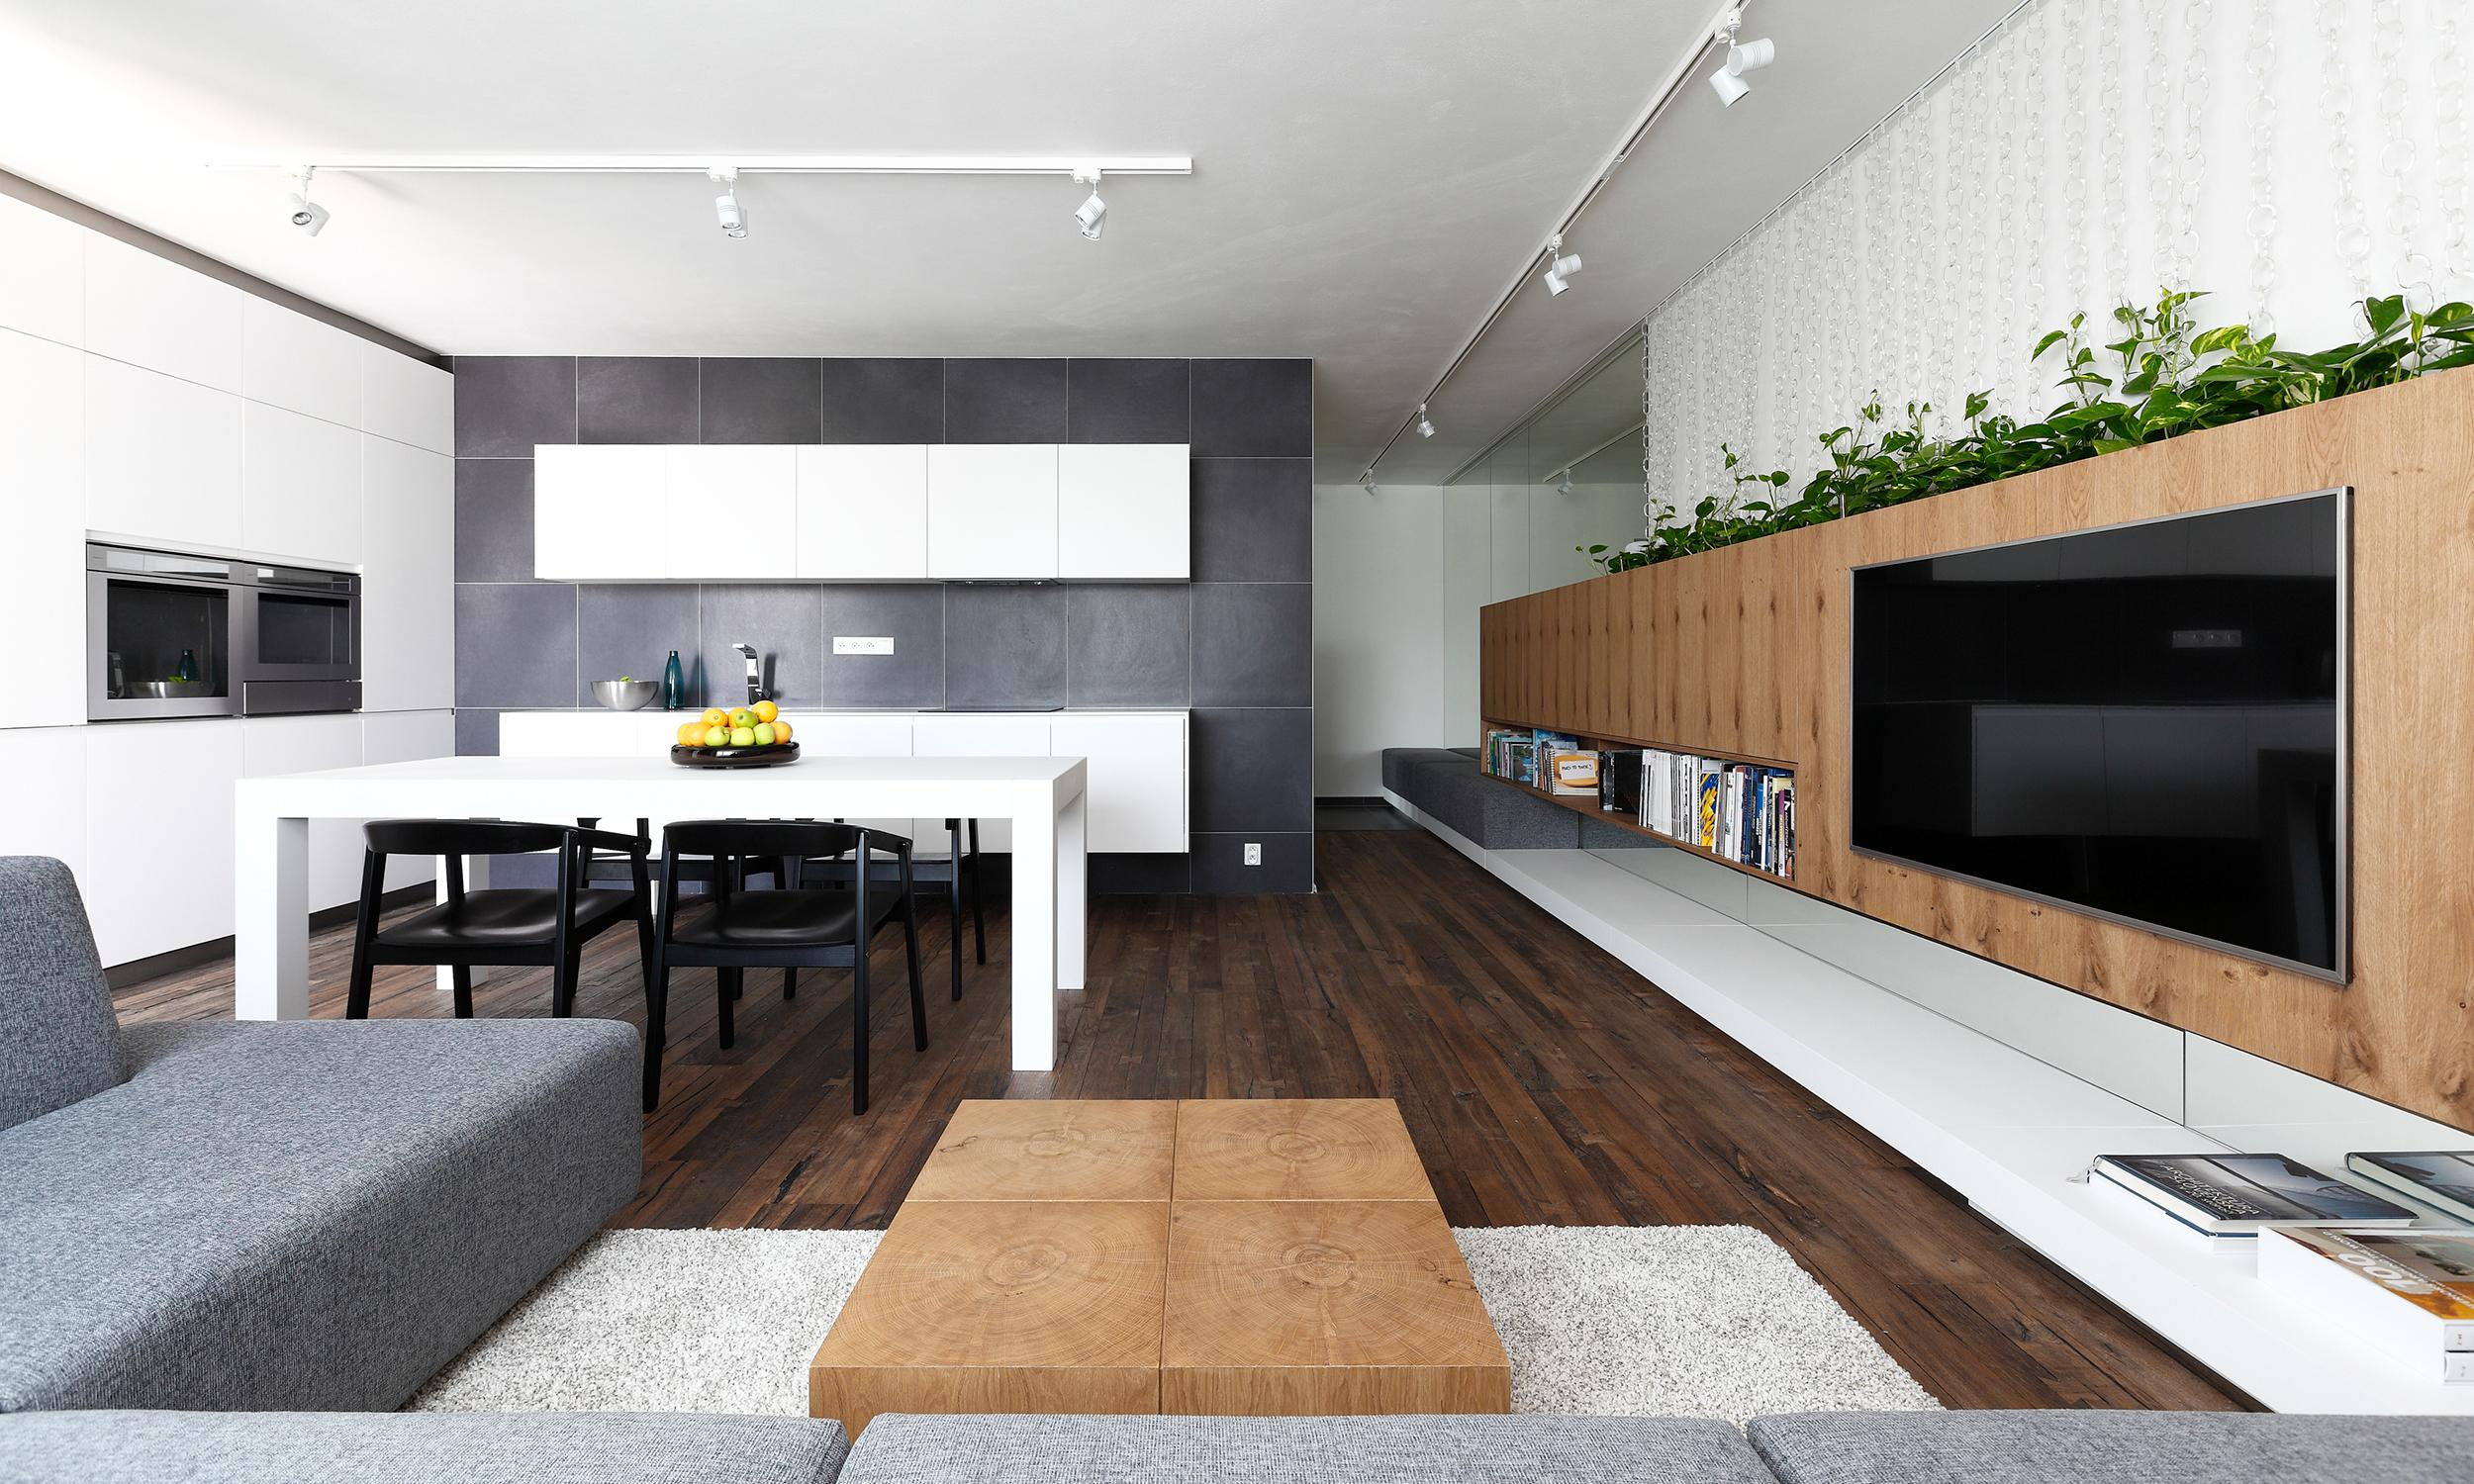 interior rules architects interior design of a living room with a kitchen and dining room bratislava slovakia